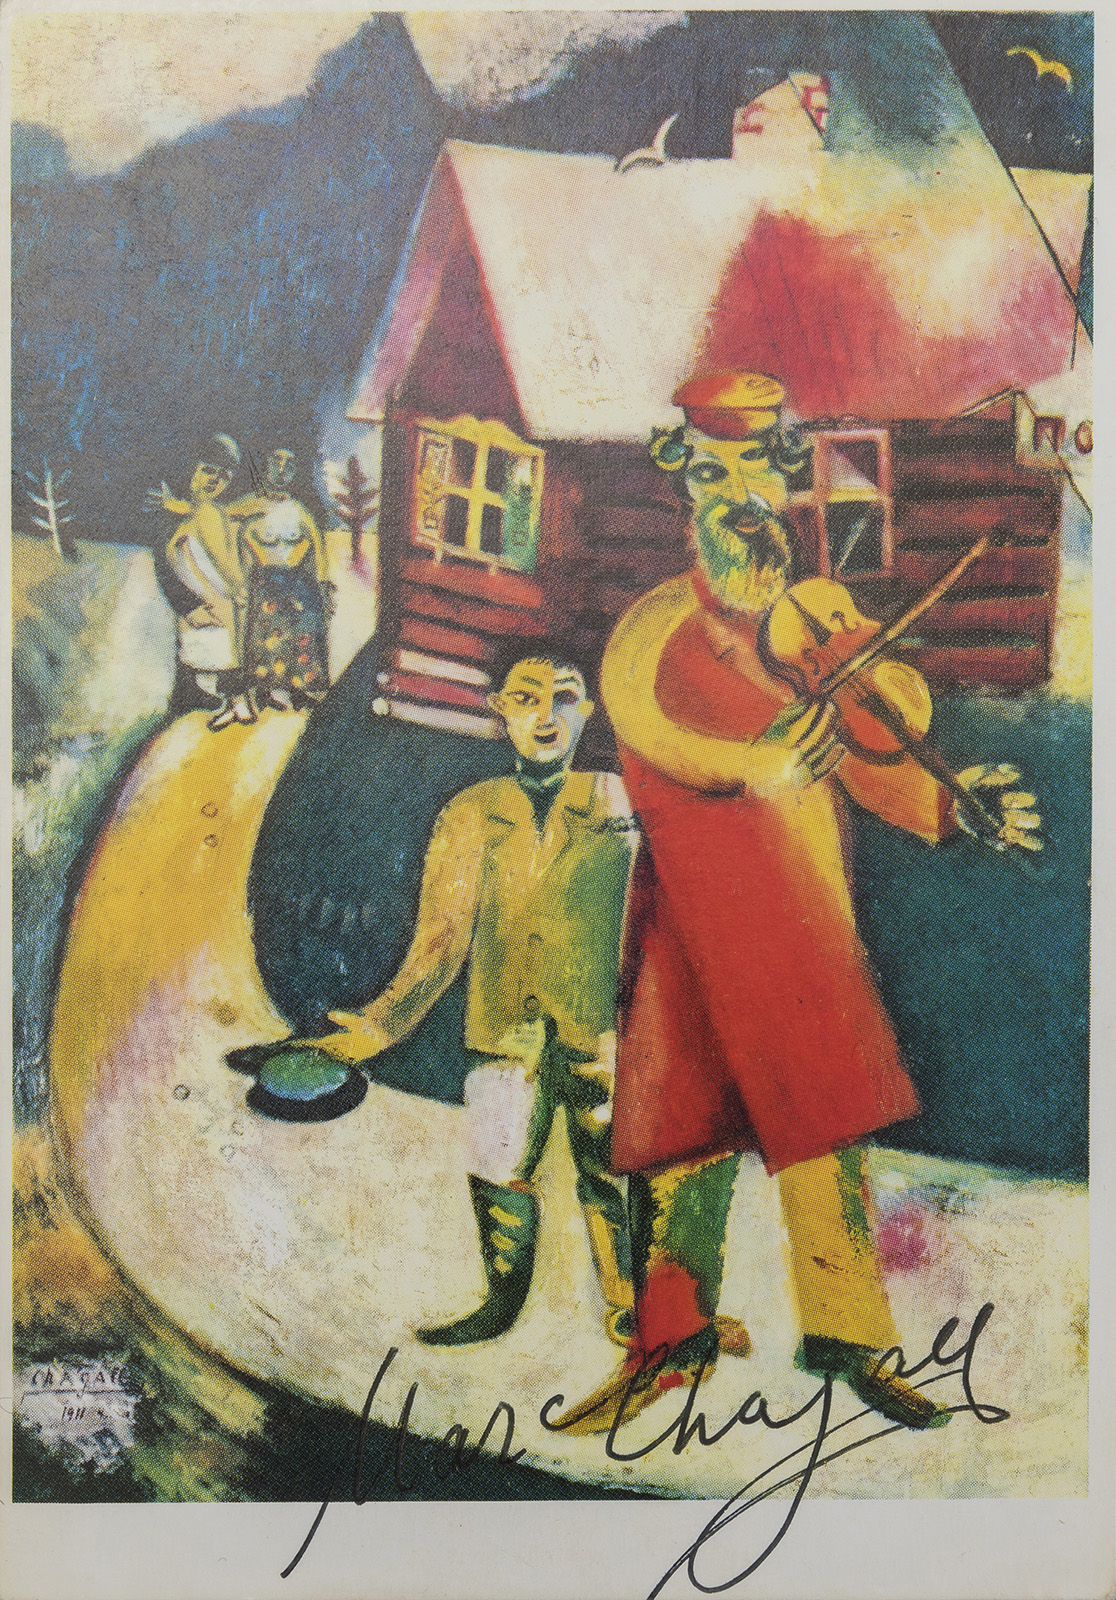 CHAGALL, Marc (Autograph)